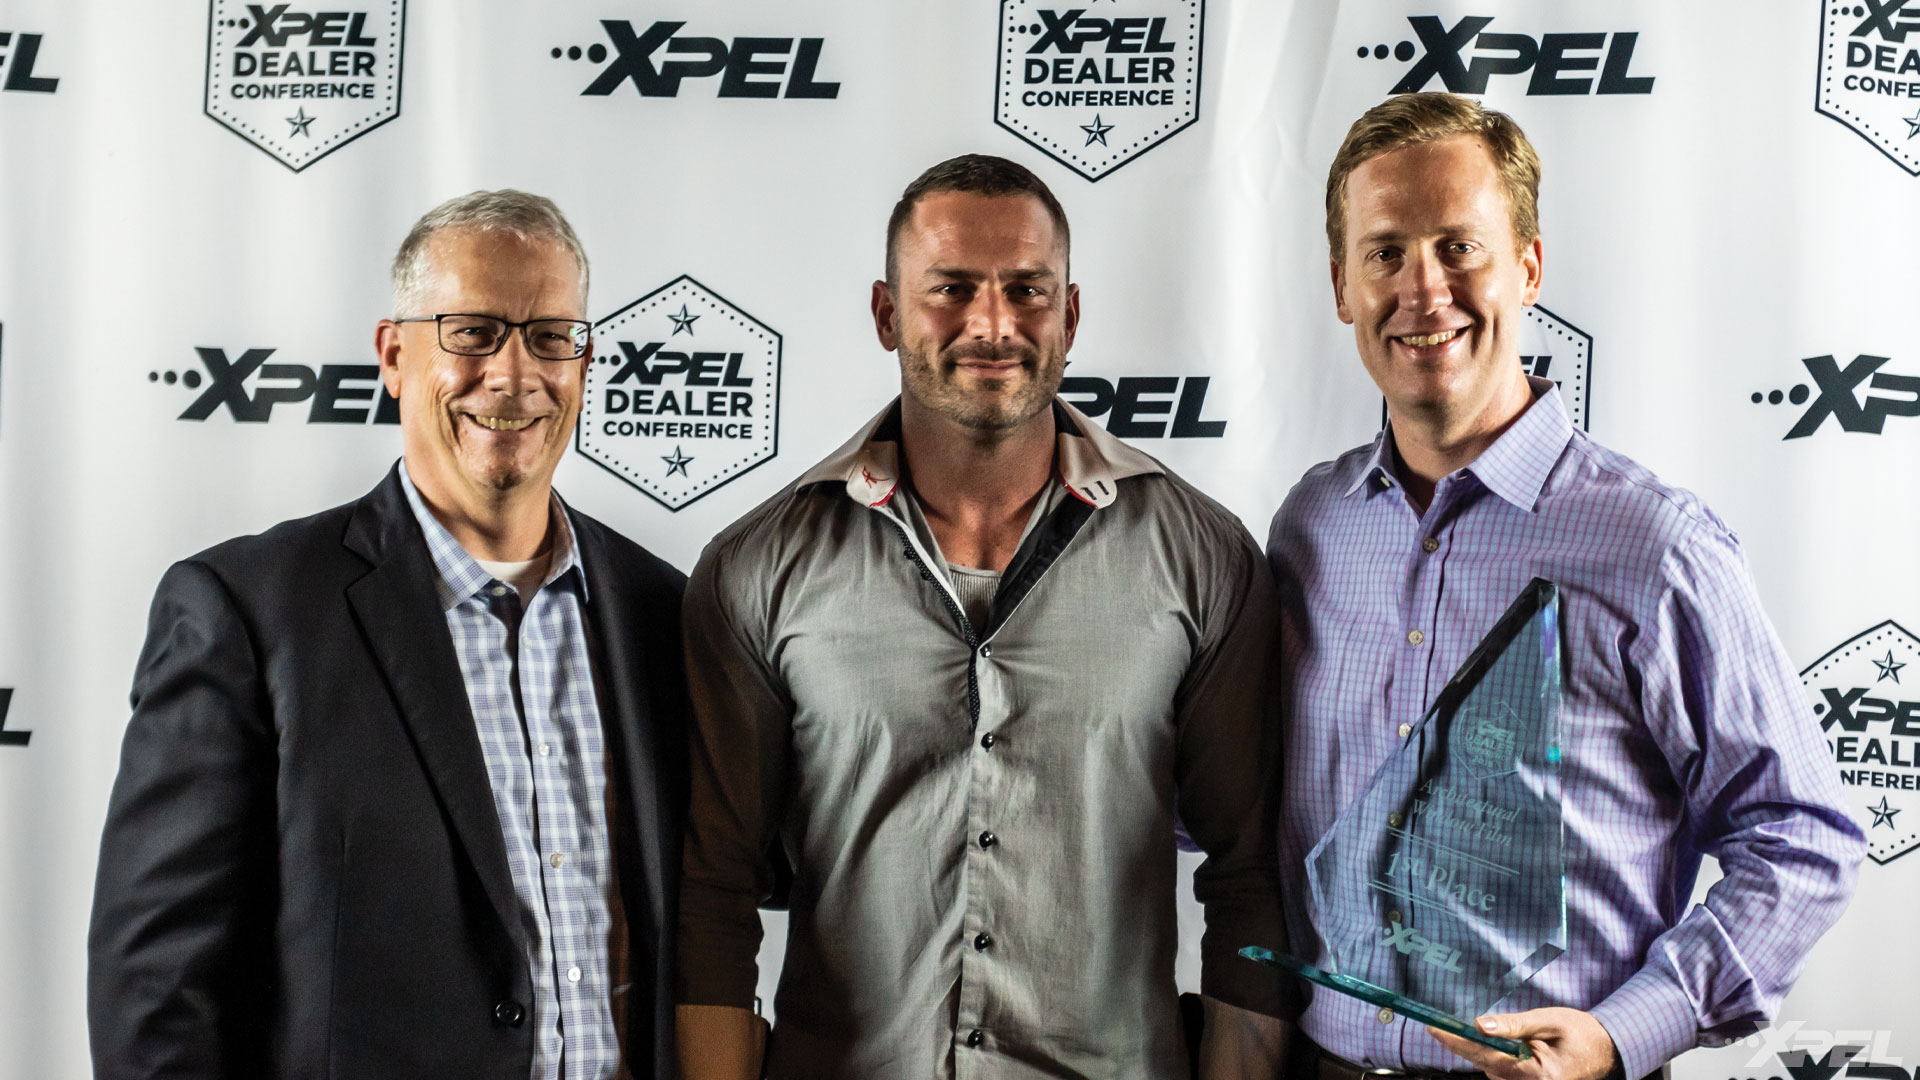 XPEL Dealer Conference 1st Place Window Film / Window Tint Winner: Shane Geddes - Solar Secure